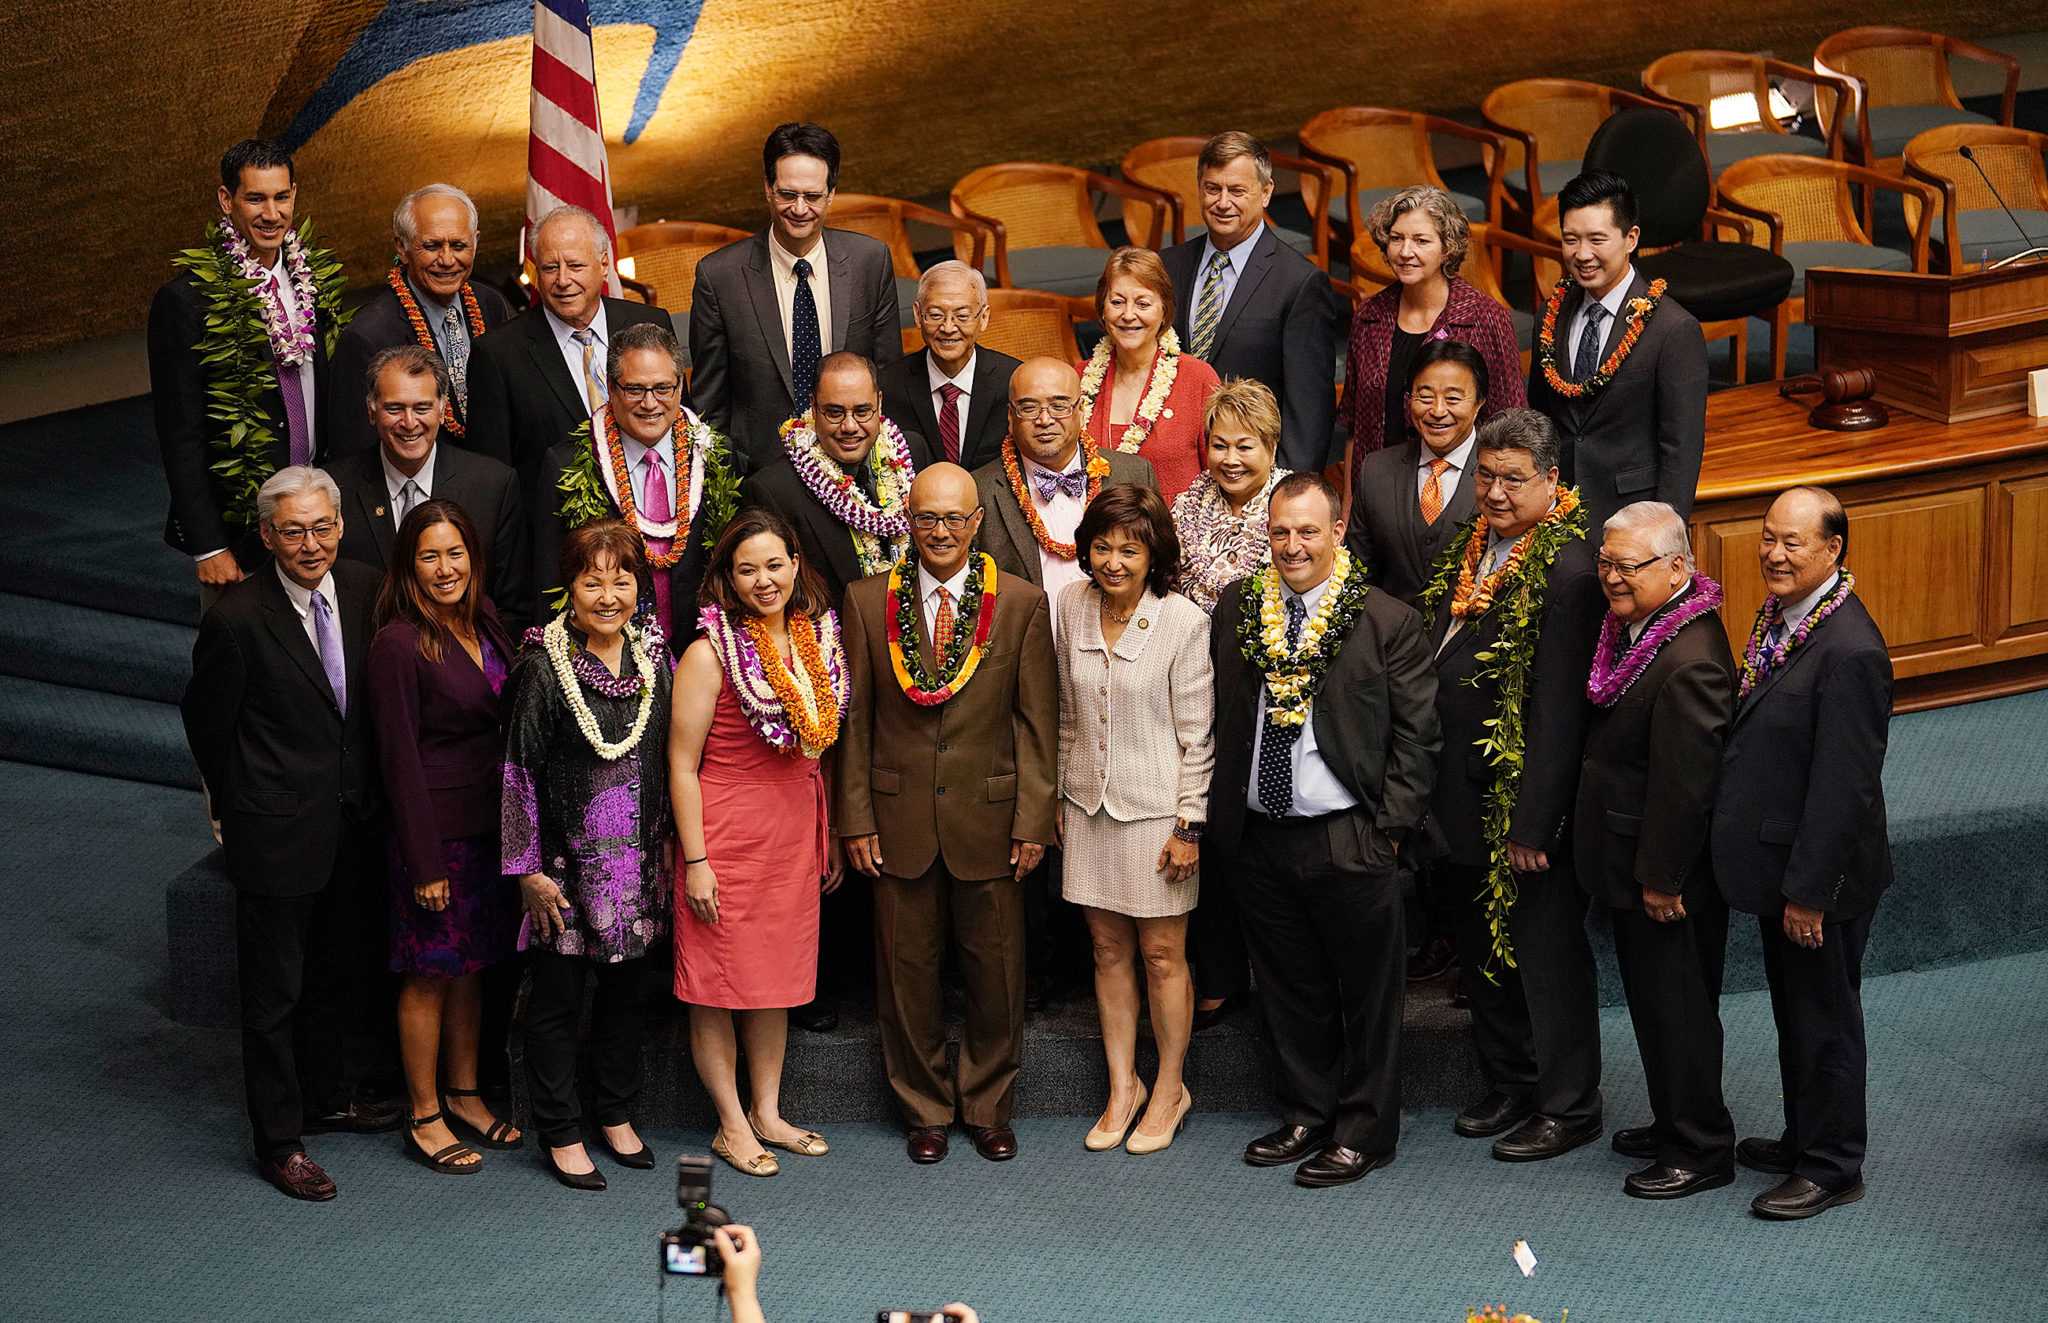 <p>On likely their final day all together, state senators gather for a group photograph.</p>